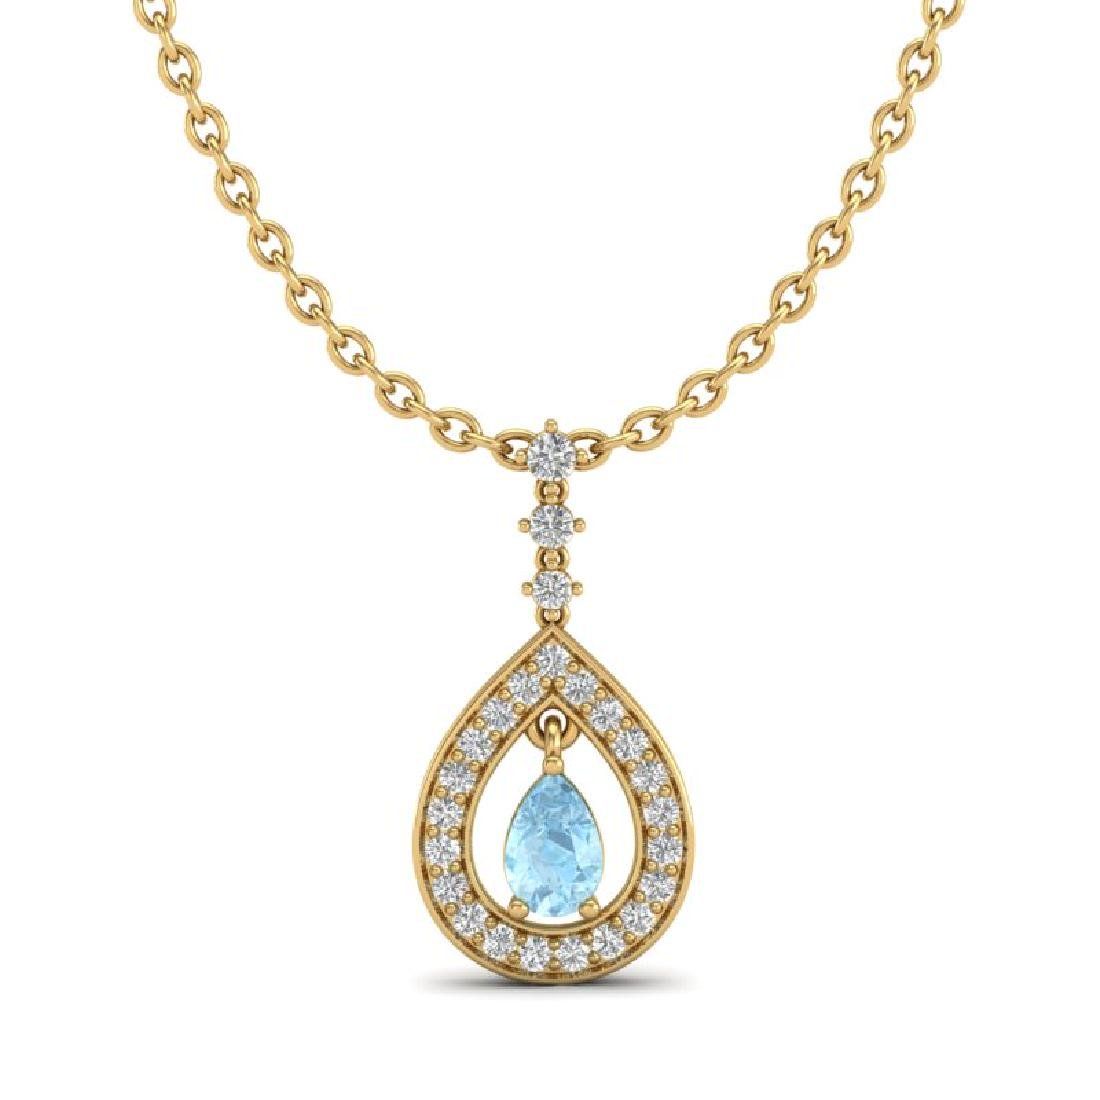 1.15 CTW Aquamarine & Micro Pave VS/SI Diamond Necklace - 2